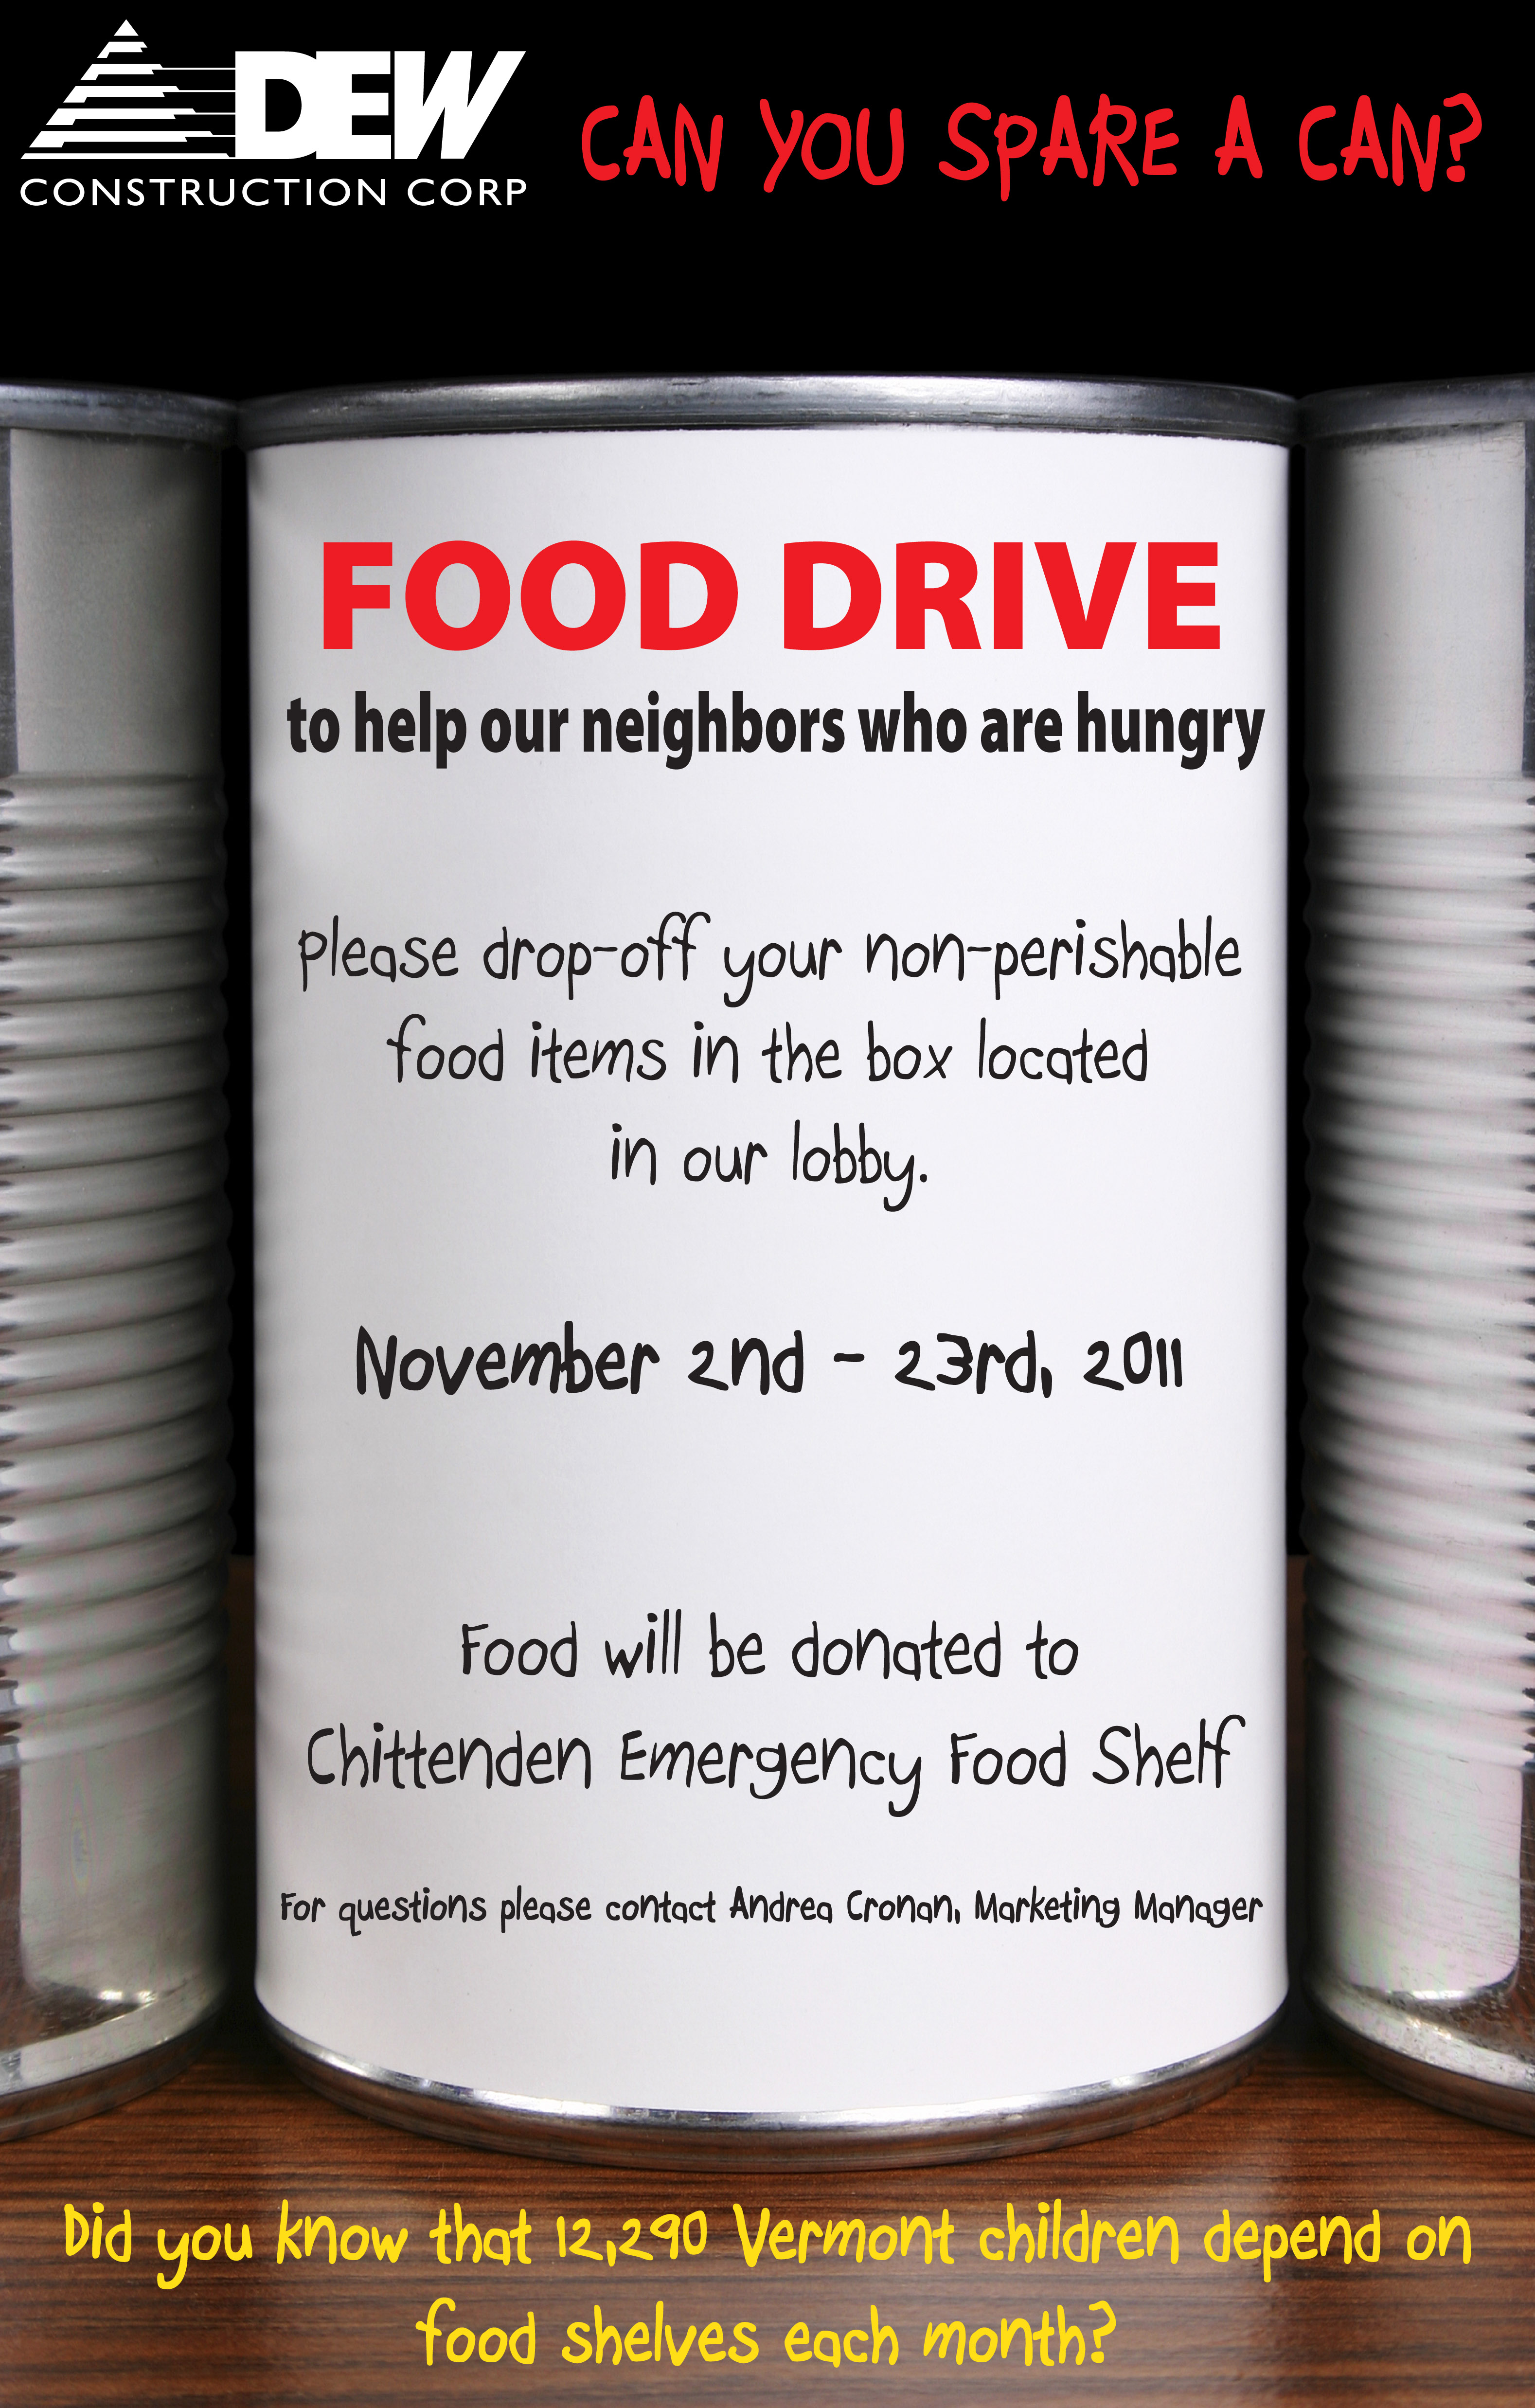 Dew Food Drive Dew Construction Latest News